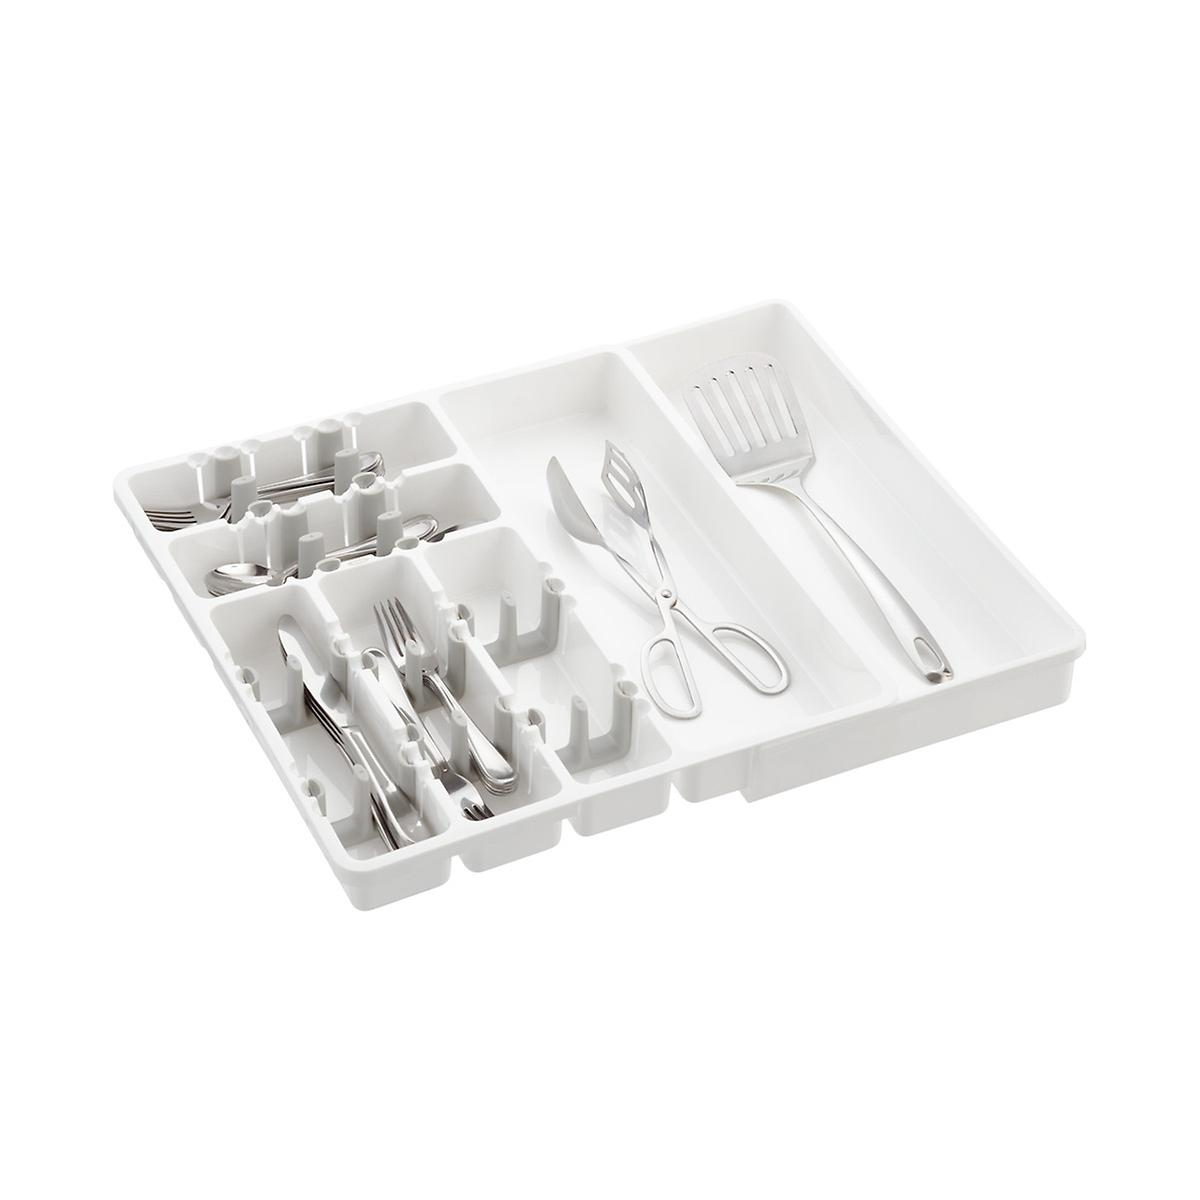 OXO Good Grips Large Expandable Utensil Organizer